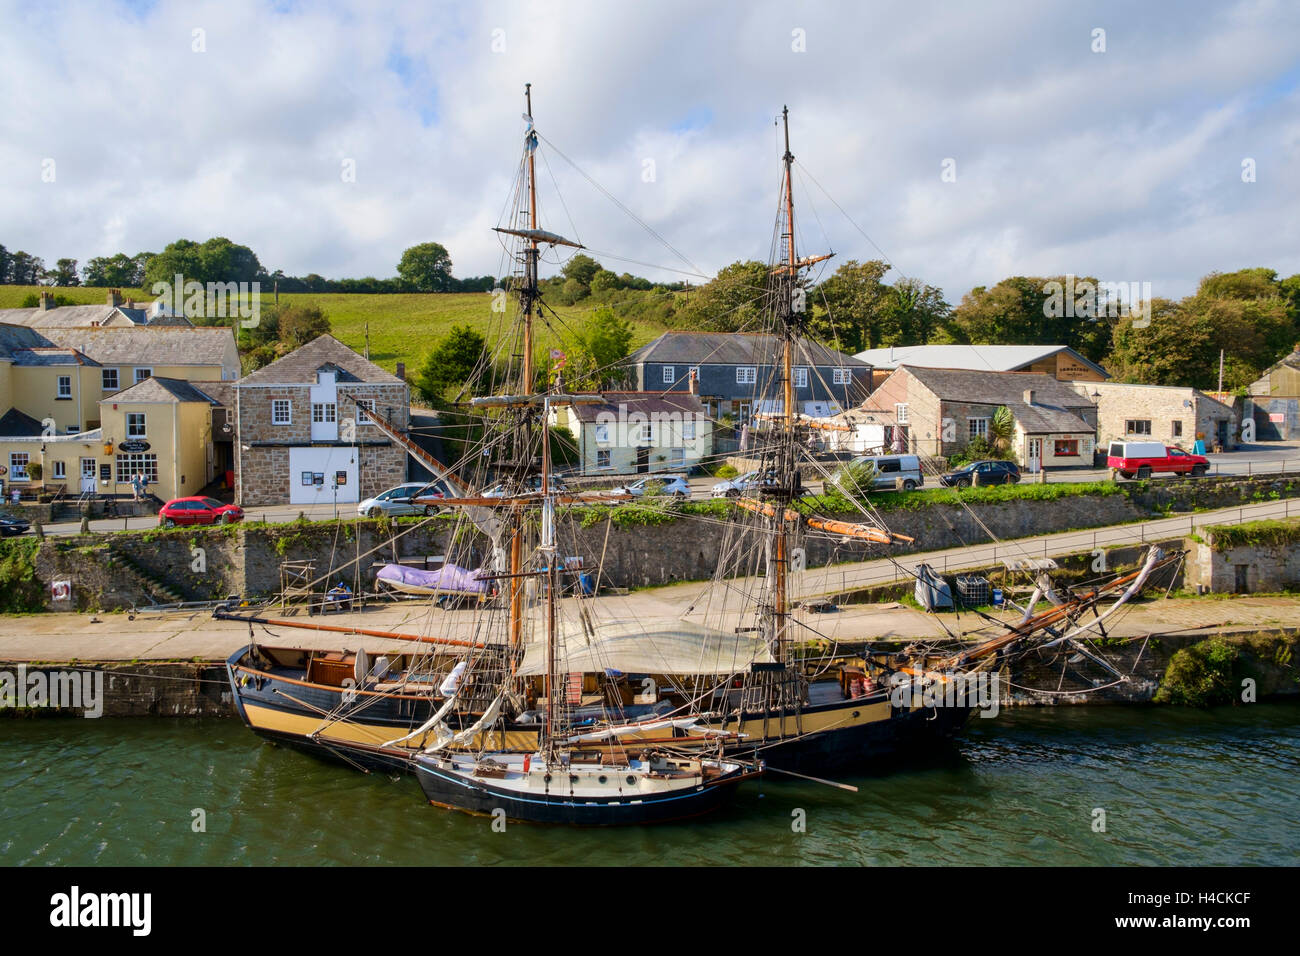 Tall ships moored in Charlestown village harbour, Cornwall, England, UK - Stock Image